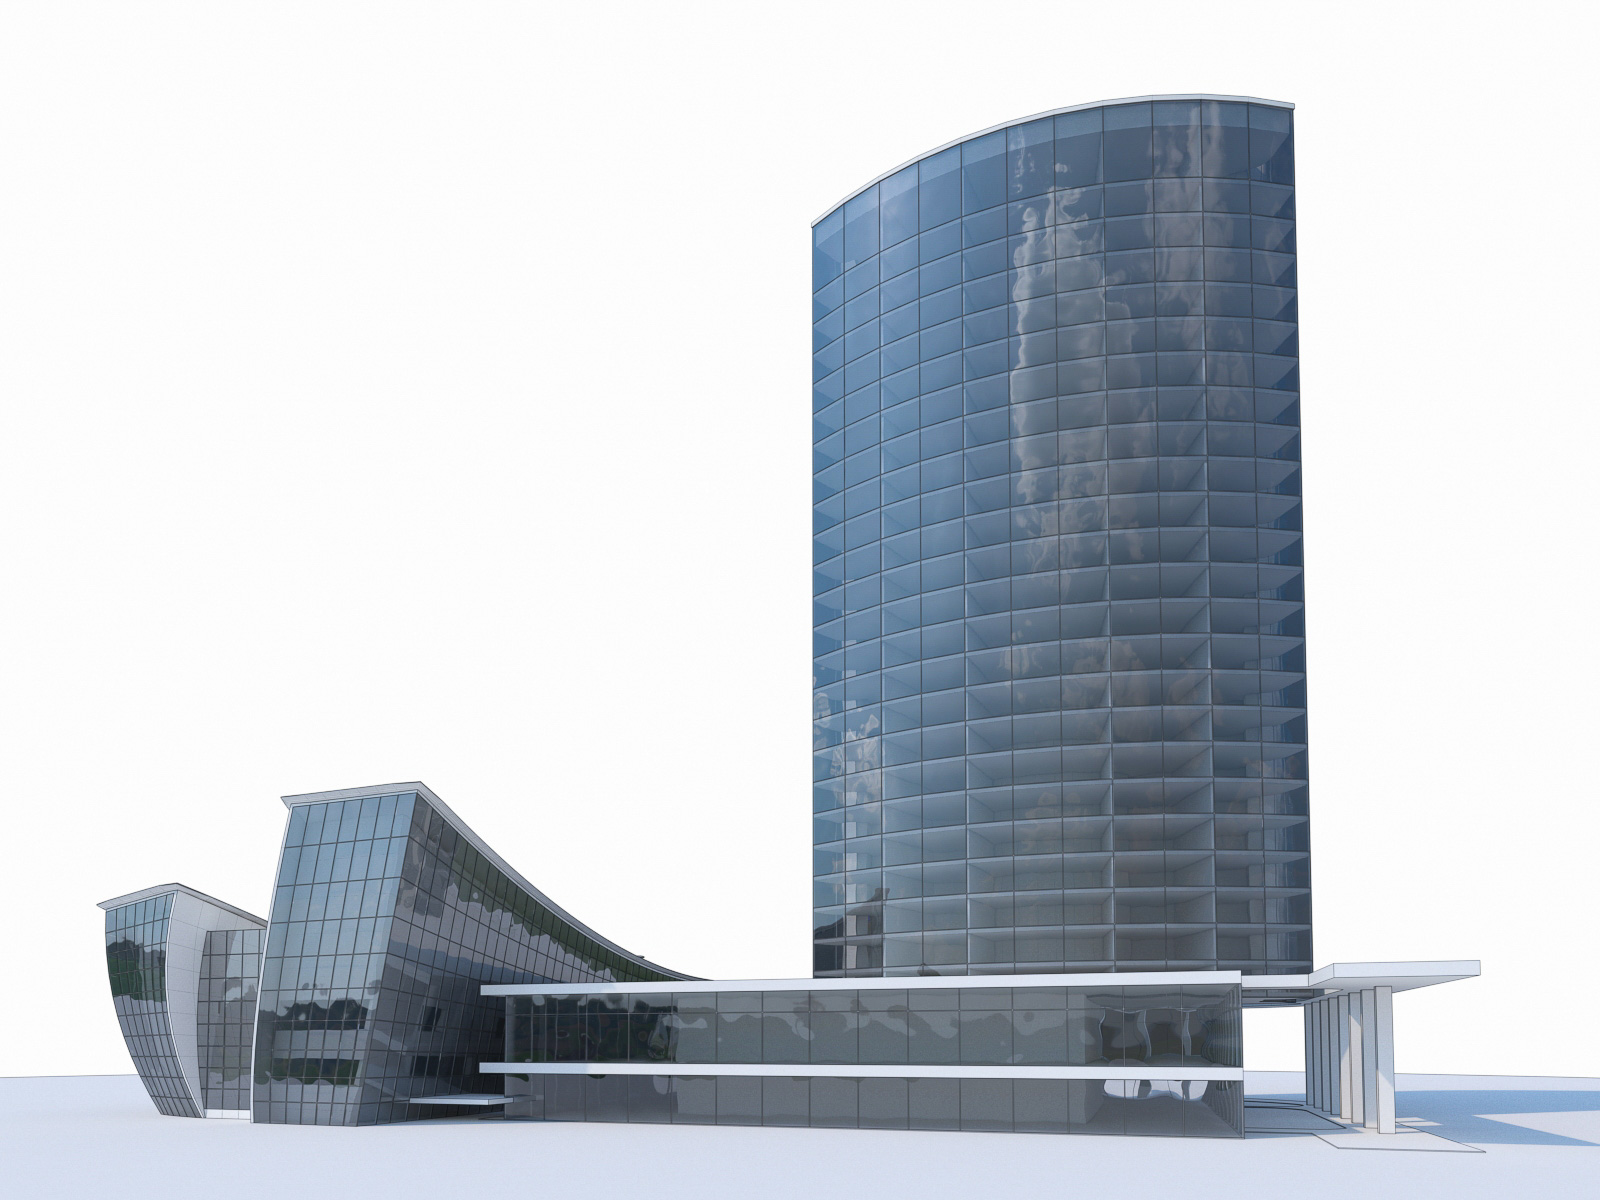 High-rise Office Building 03